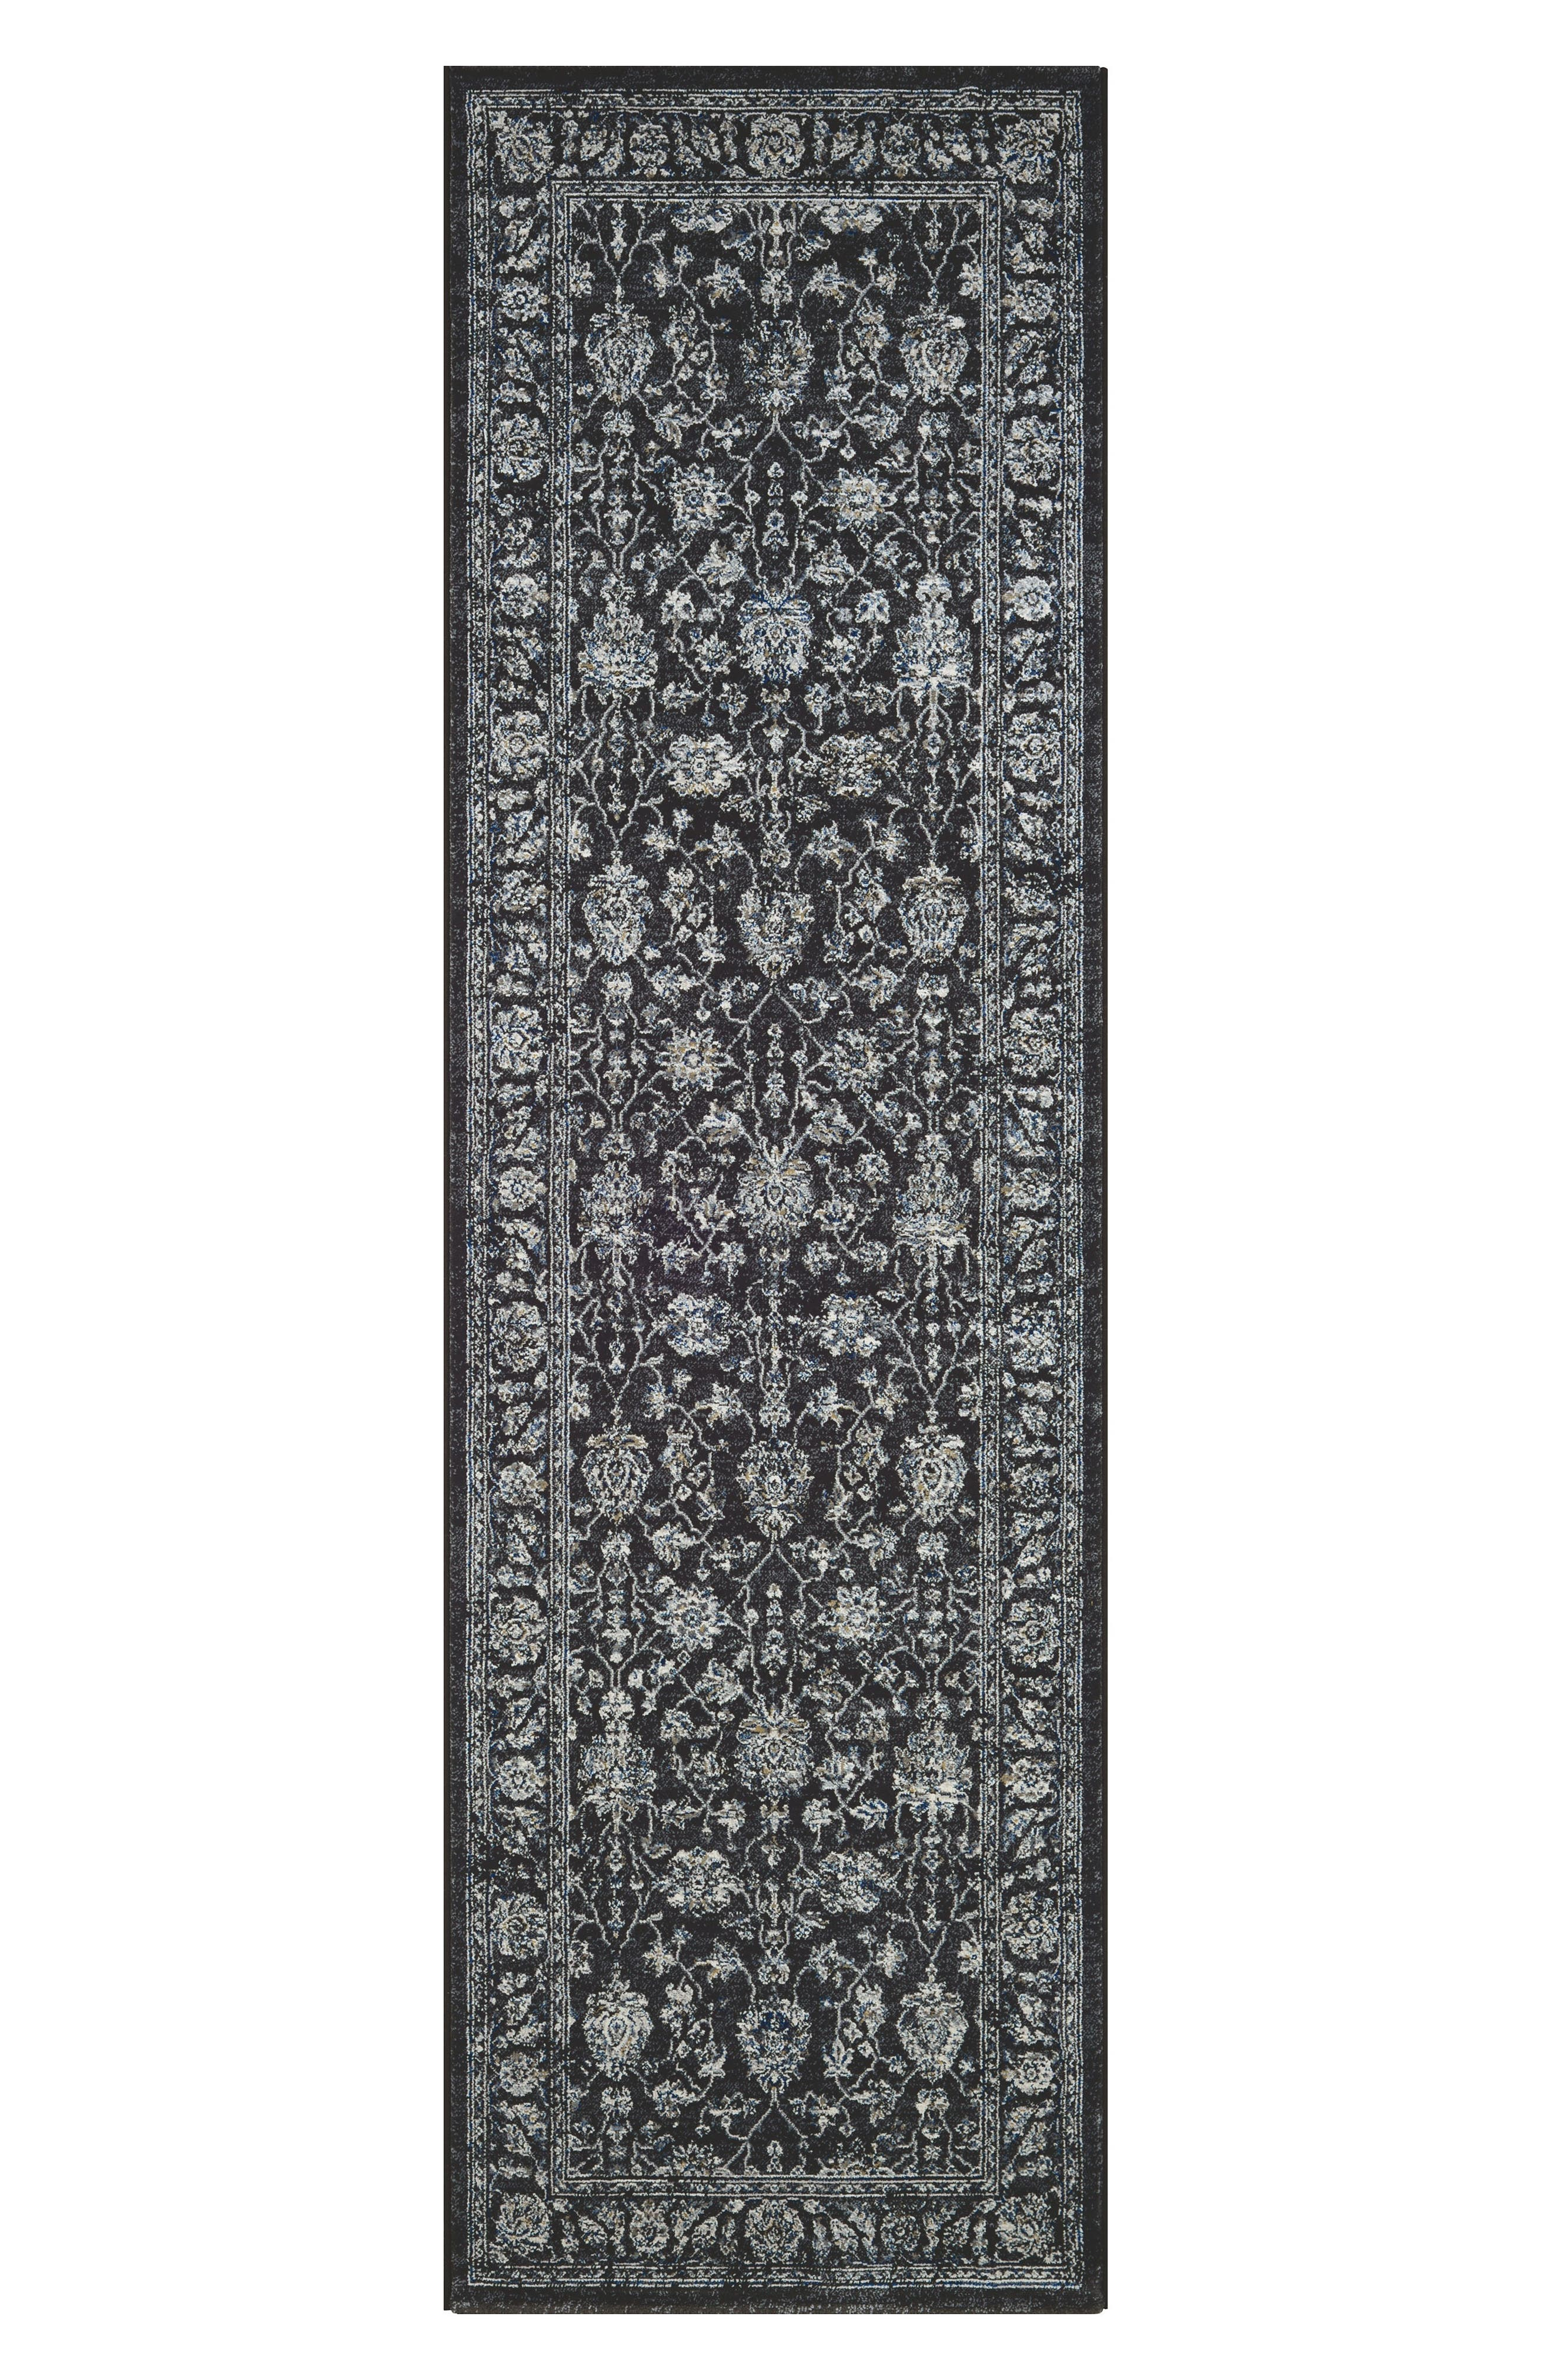 Mashhad Indoor/Outdoor Rug,                             Alternate thumbnail 2, color,                             BLACK